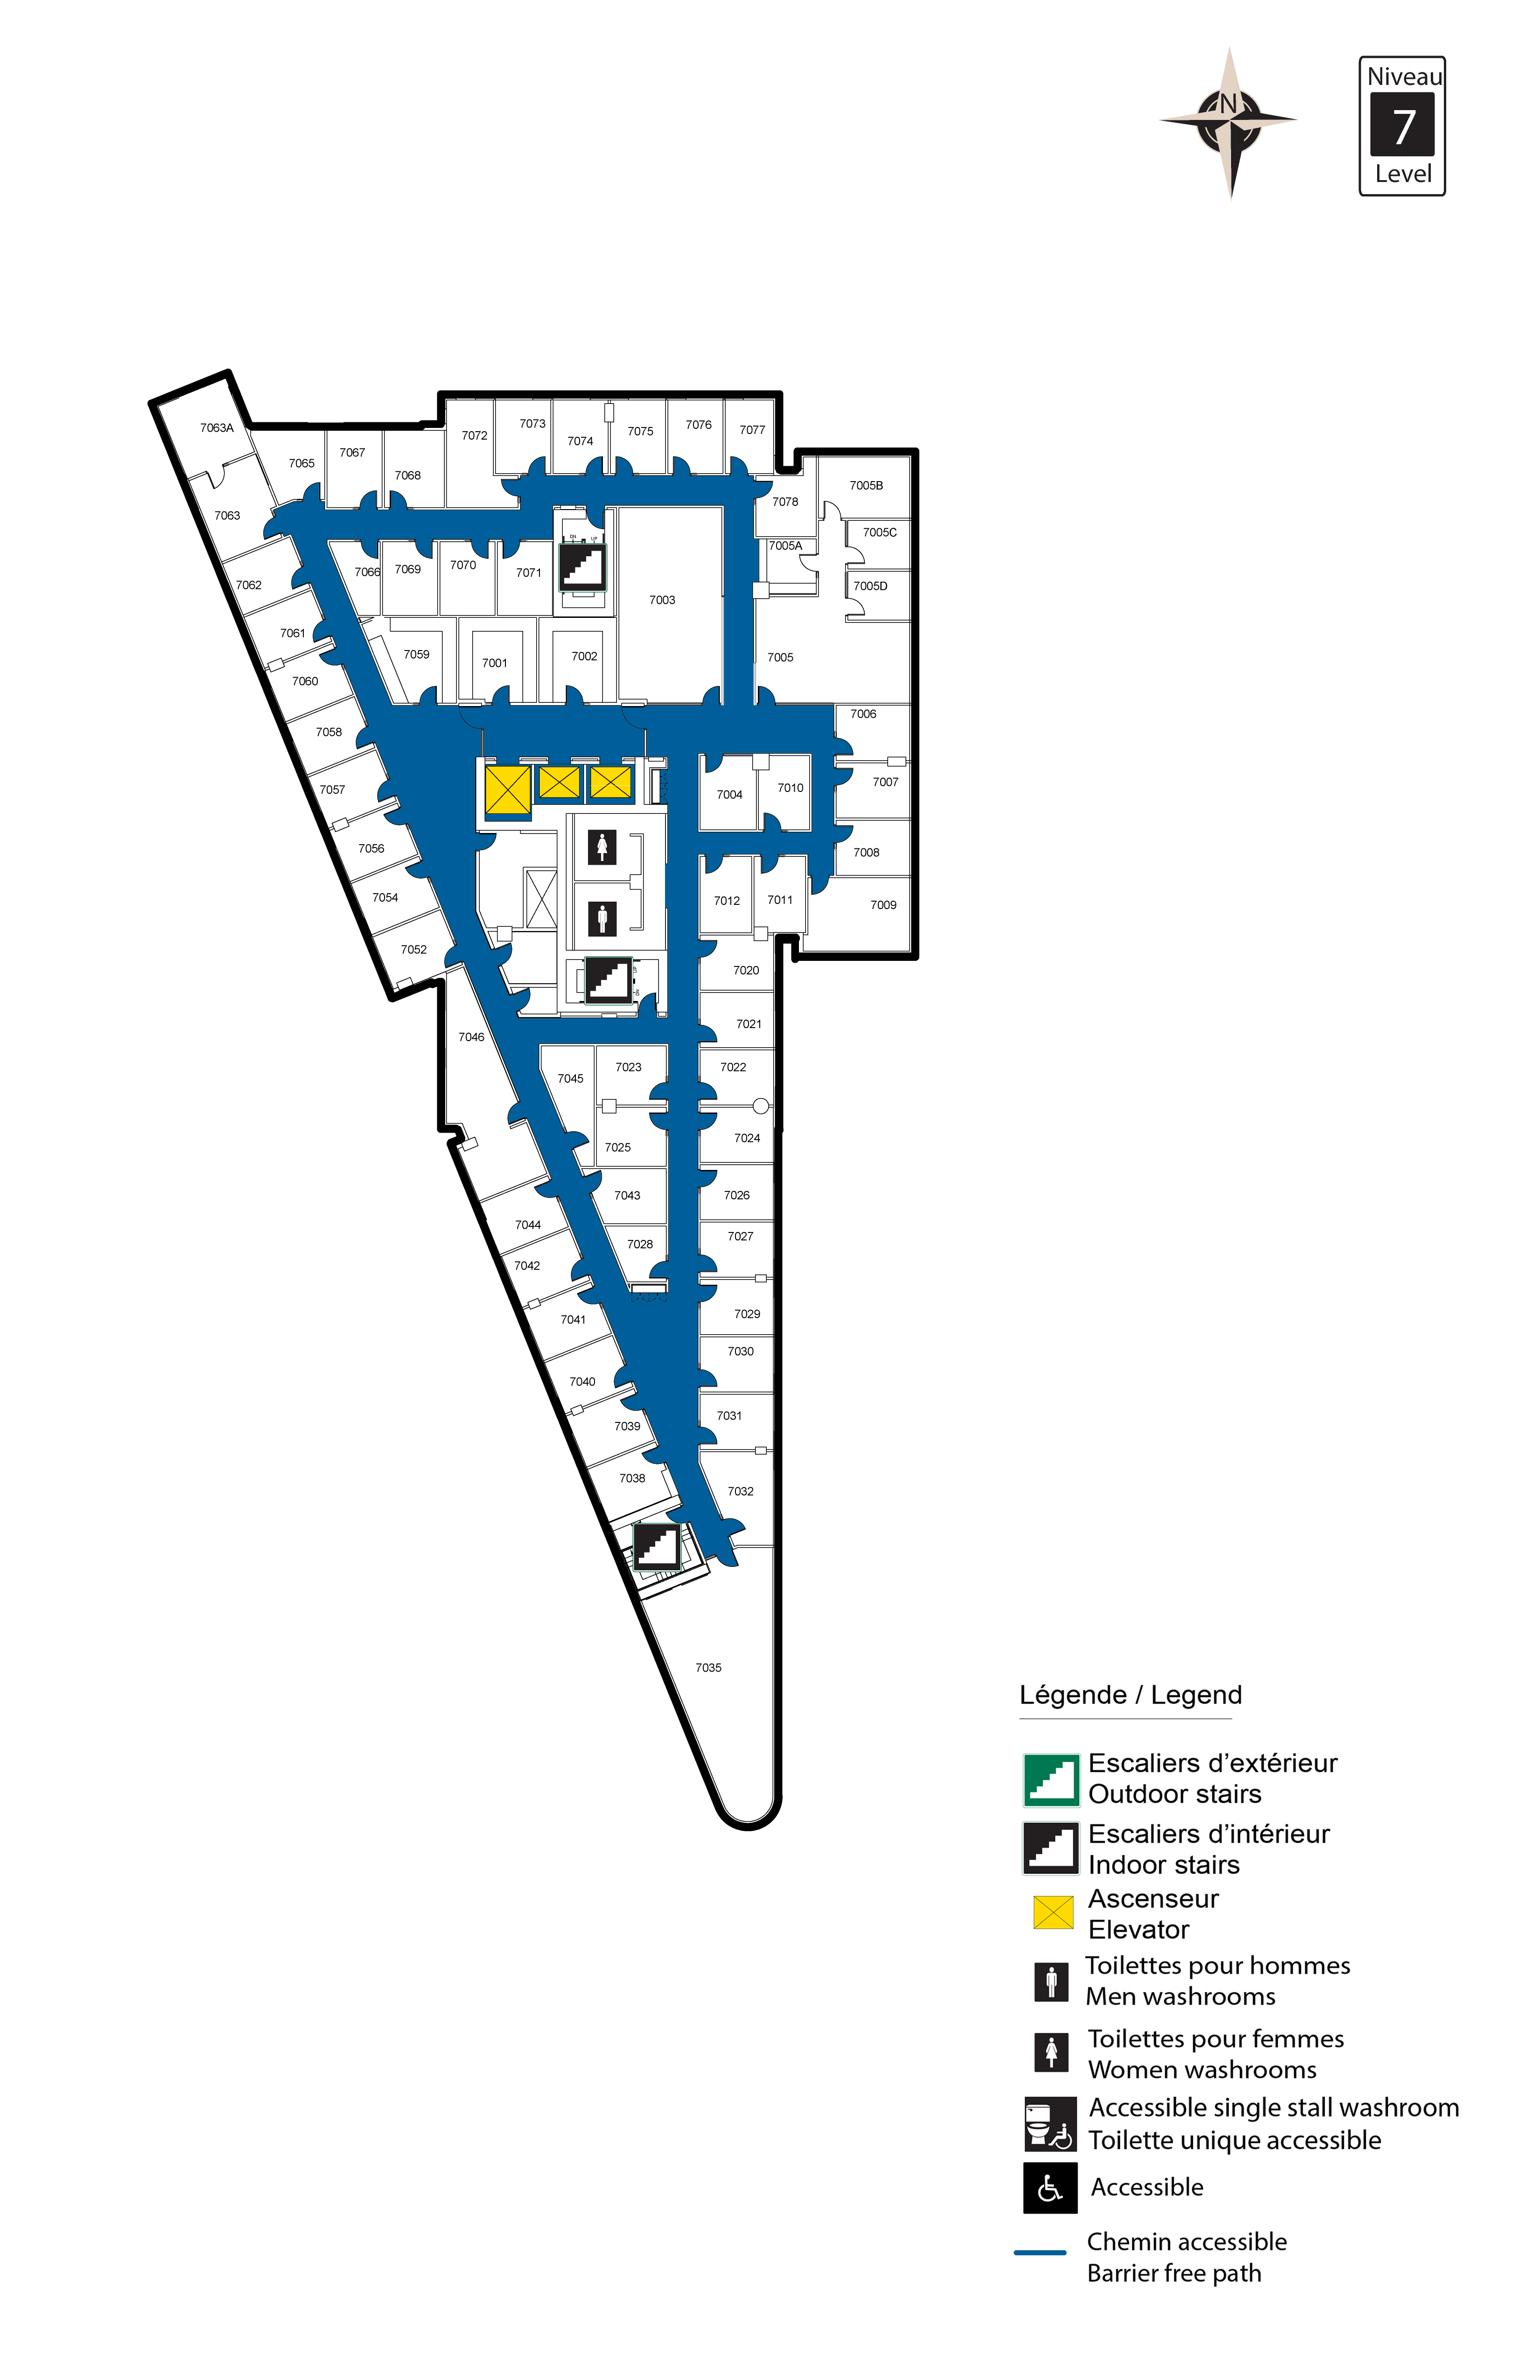 Accessible Map - FSS Level 7